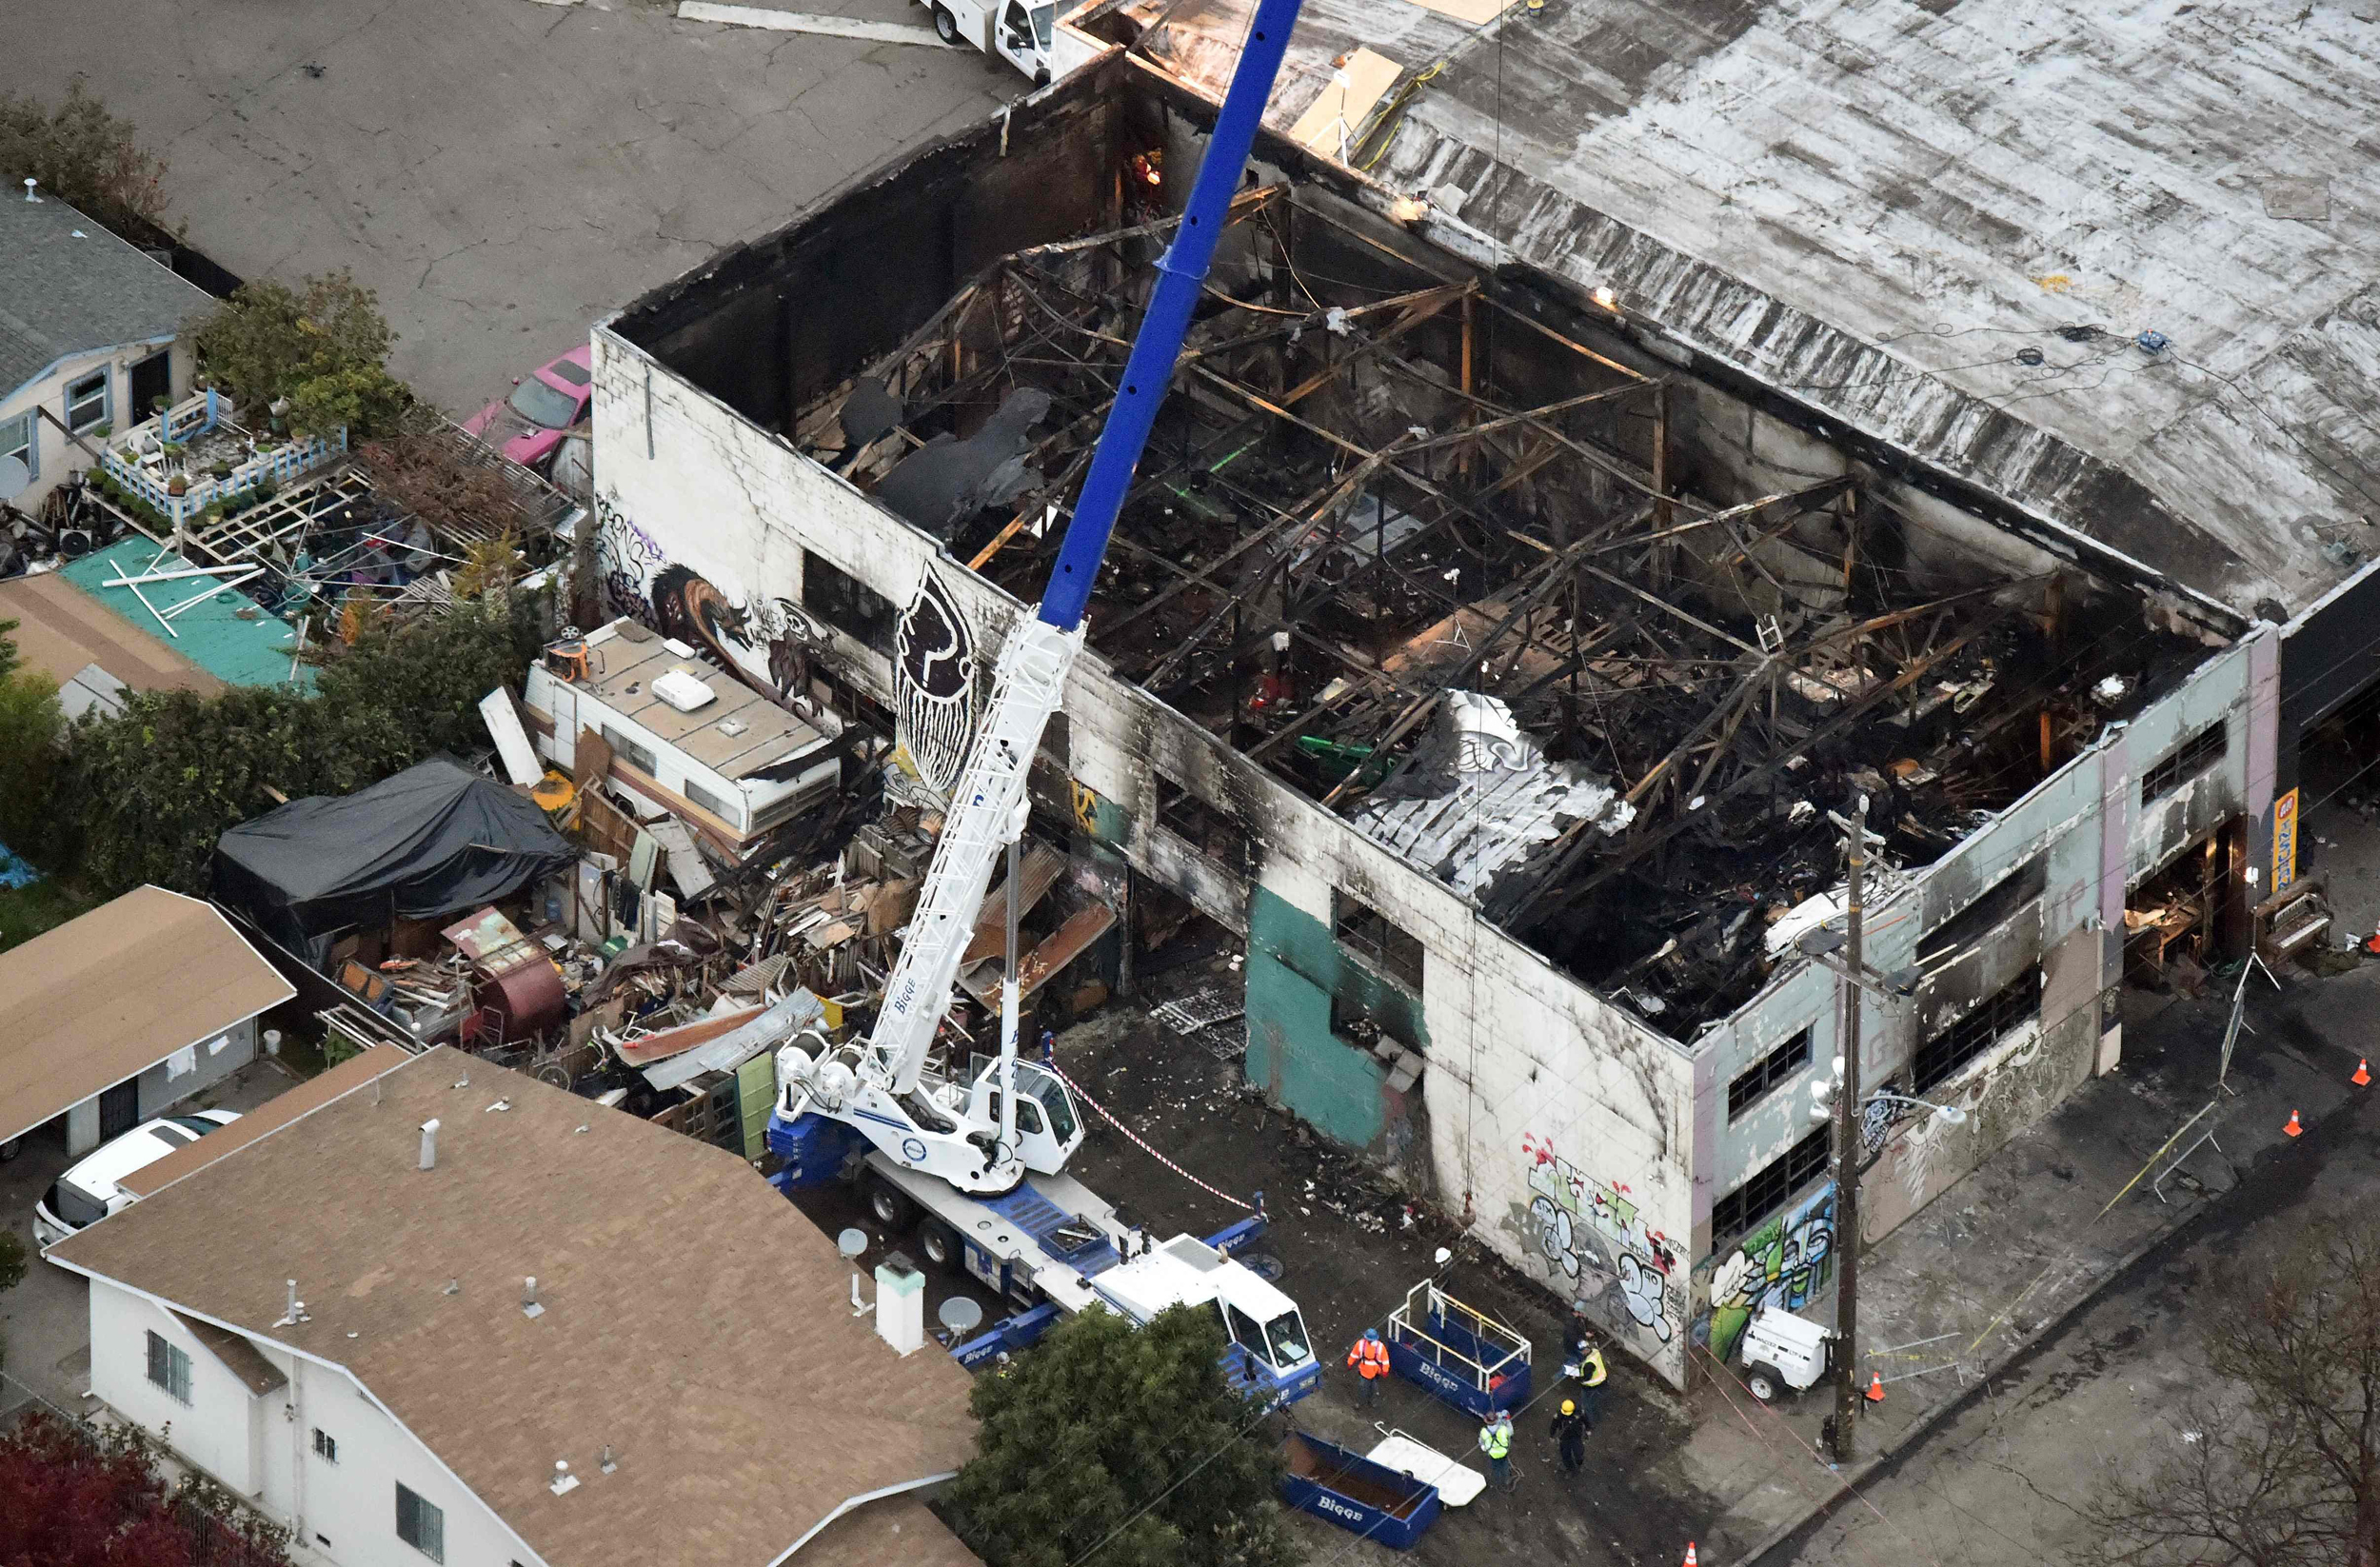 Image: A crane is used to lift wreckage in a fire-ravaged warehouse in Oakland